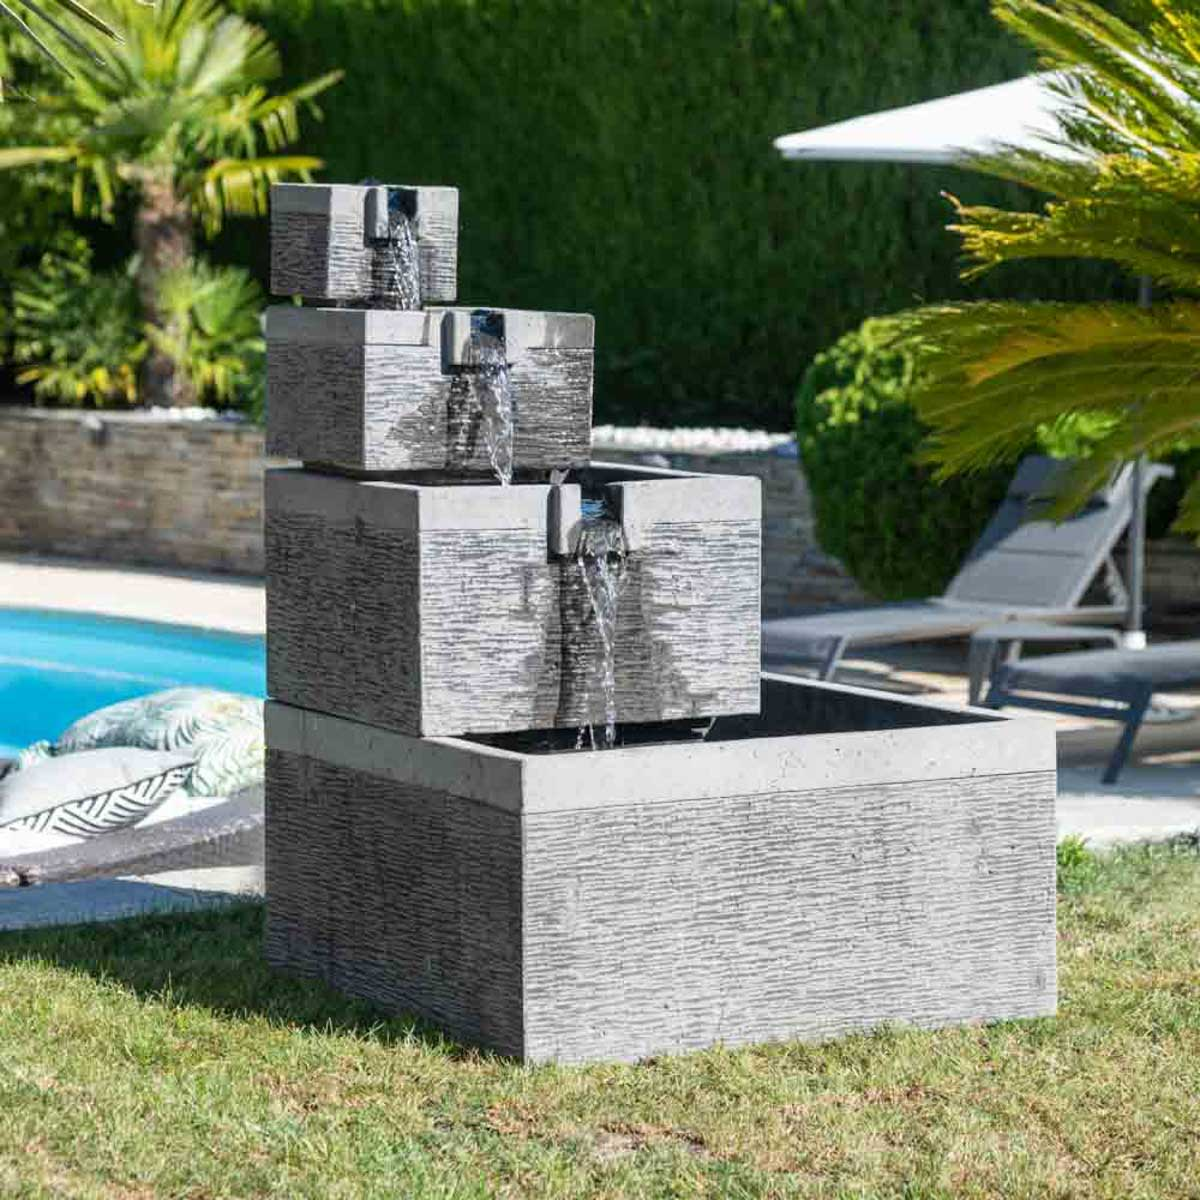 fontaine de jardin fontaine d bordement bassin carr. Black Bedroom Furniture Sets. Home Design Ideas